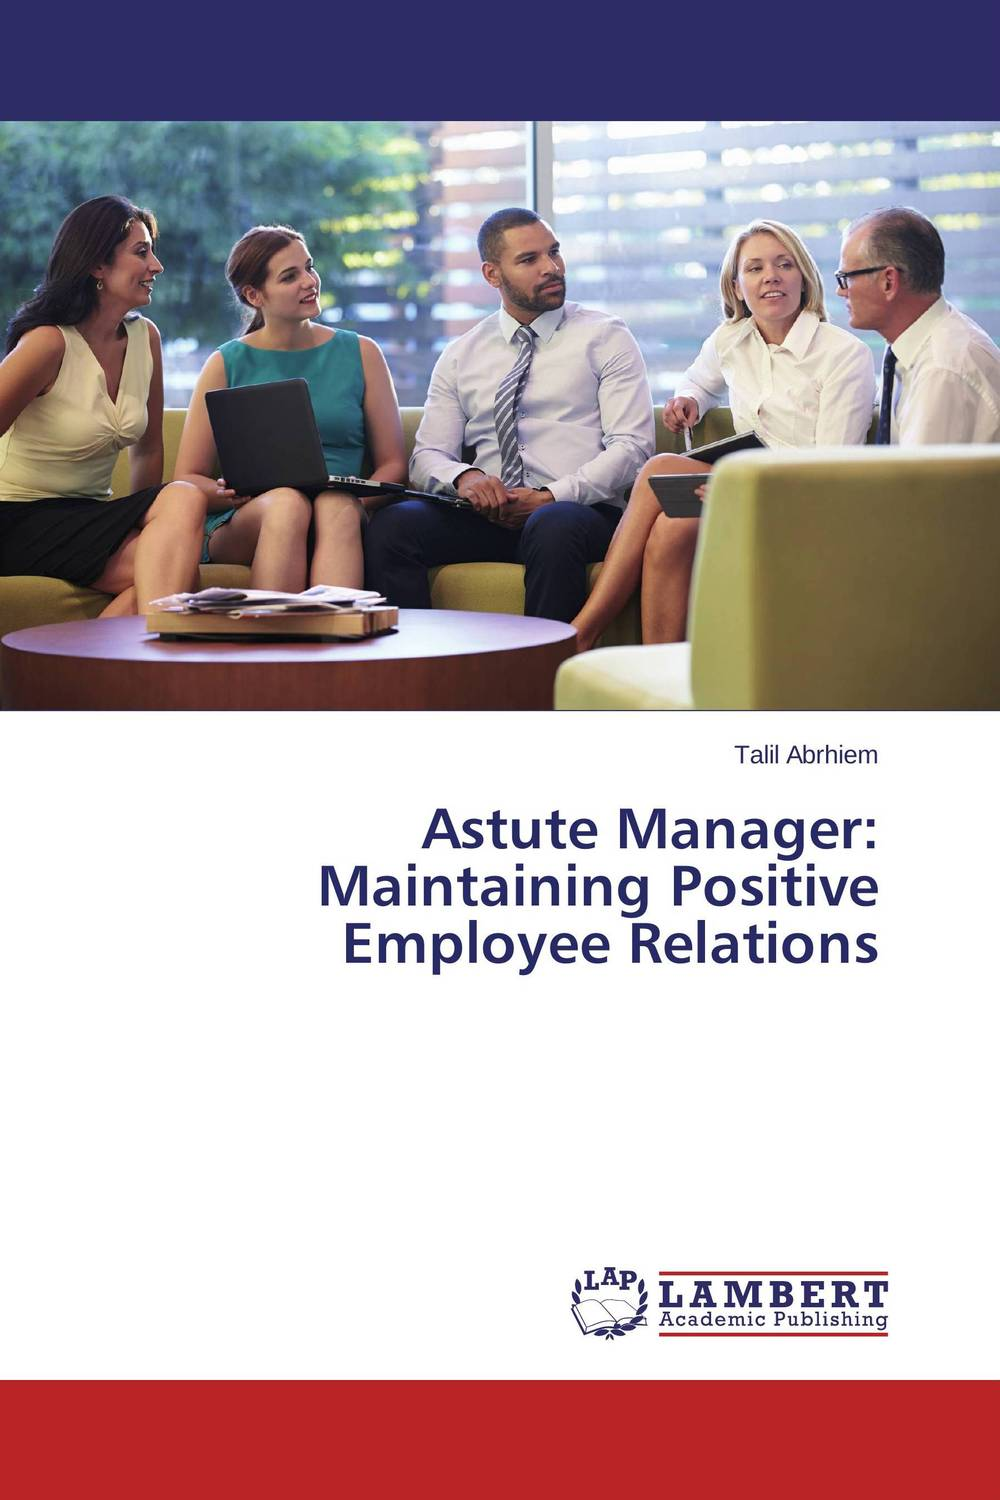 Astute Manager: Maintaining Positive Employee Relations